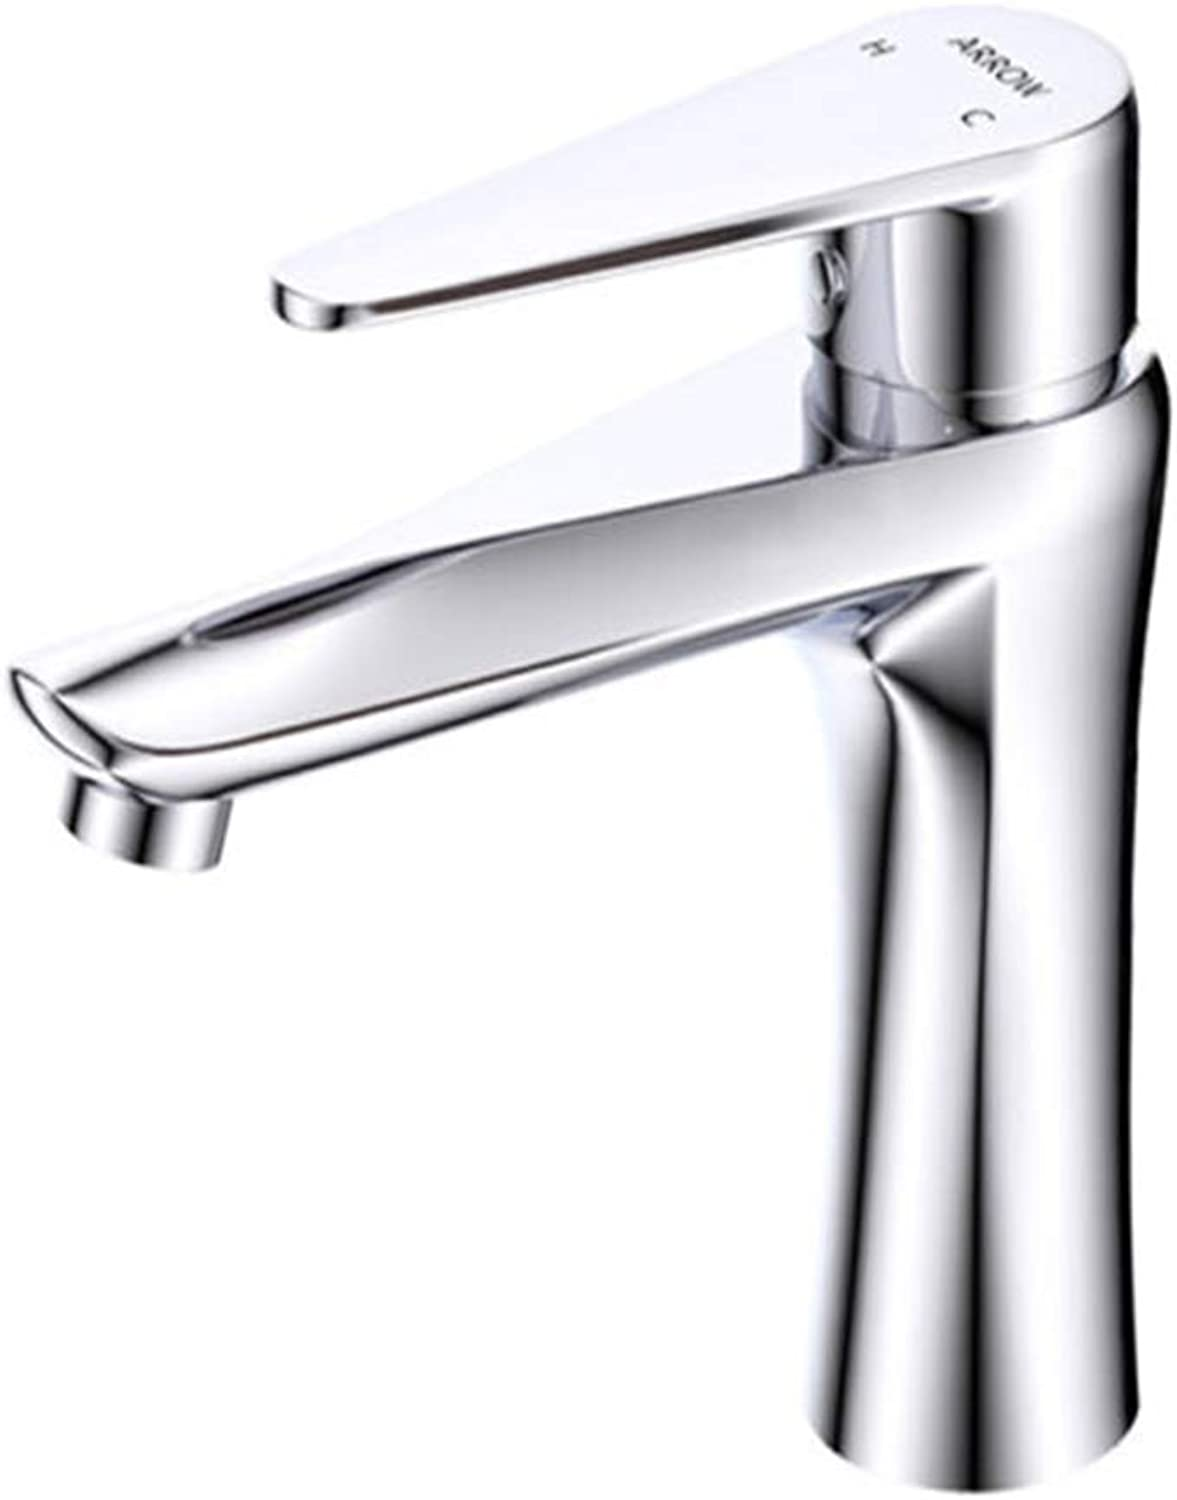 Kitchen Taps Faucet Modern Kitchen Sink Taps Stainless Steelbathroom Copper Faucet Cold and Hot Basin Faucet Single-Hole Bathroom Washbasin Table Faucet